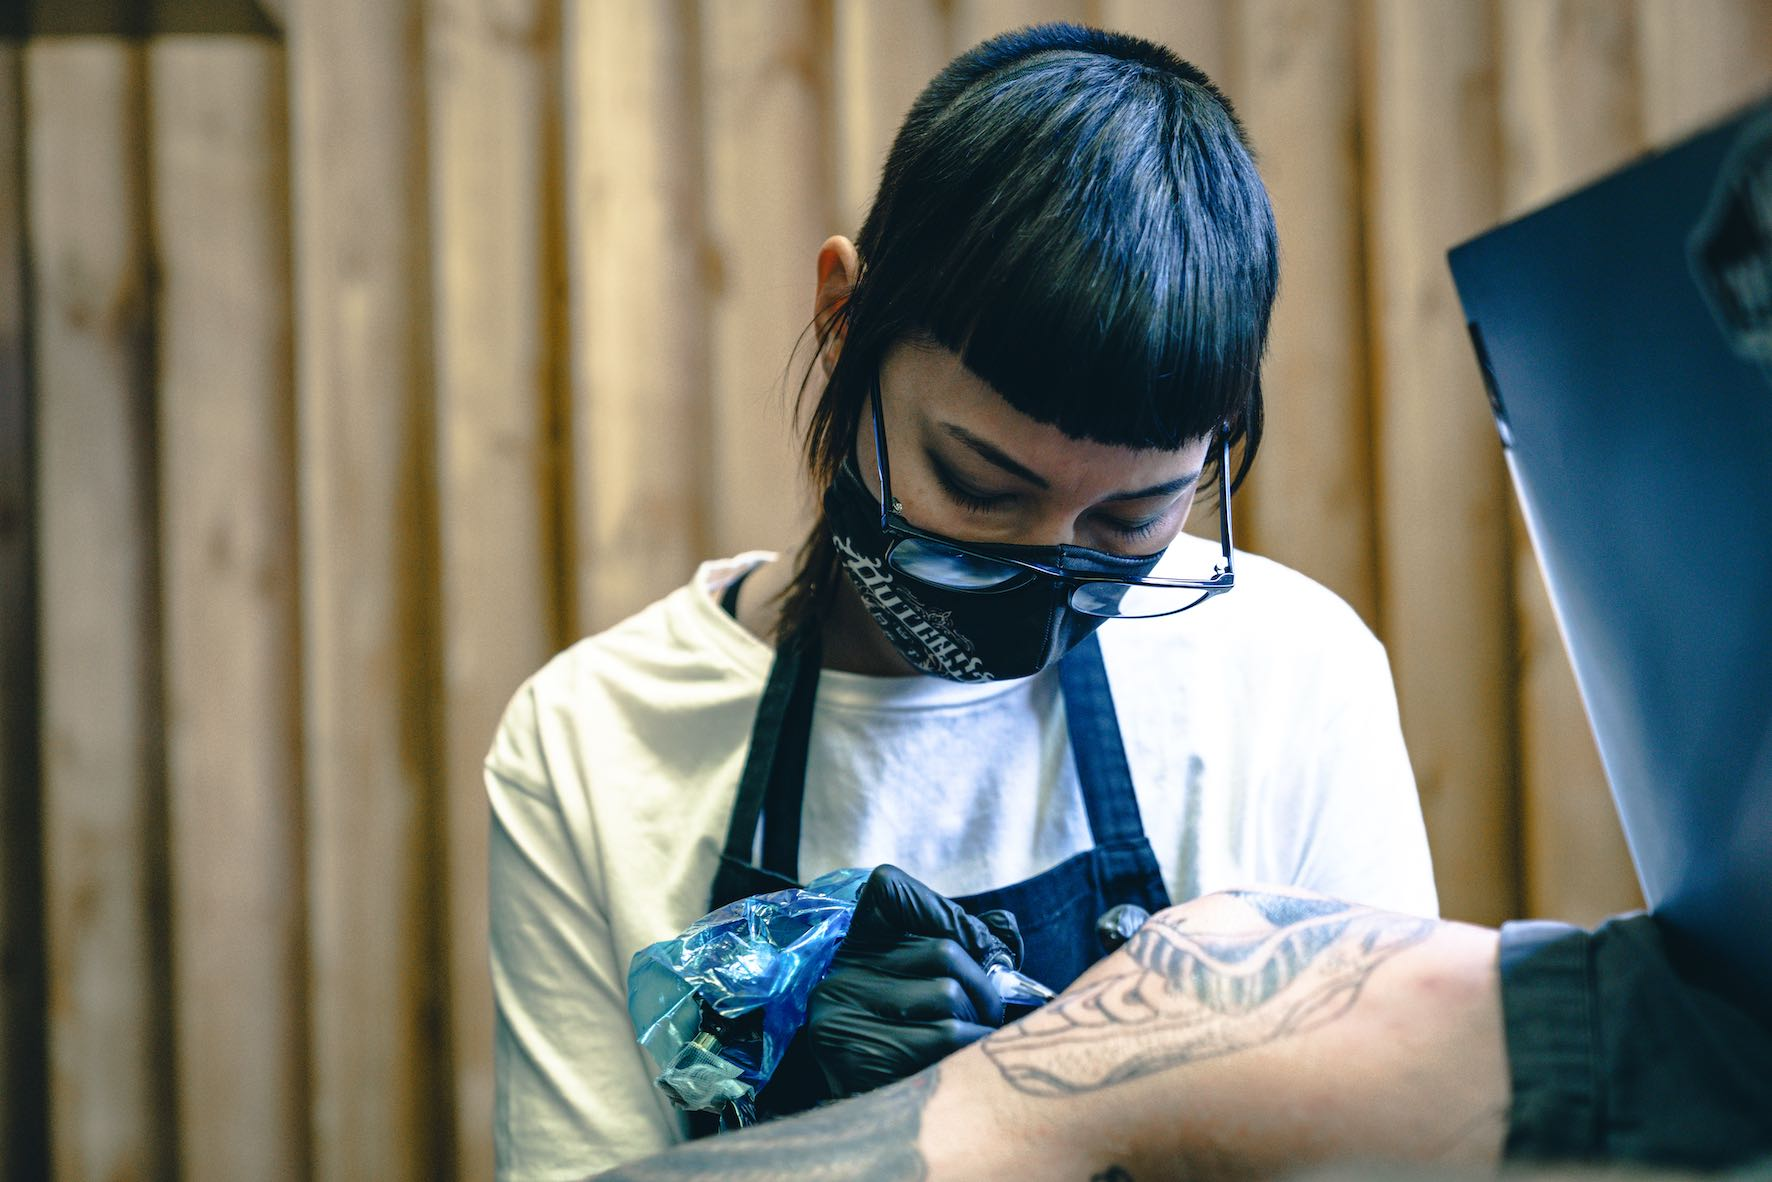 Romi Ding tattooing a client at Outcast Tattoos 818